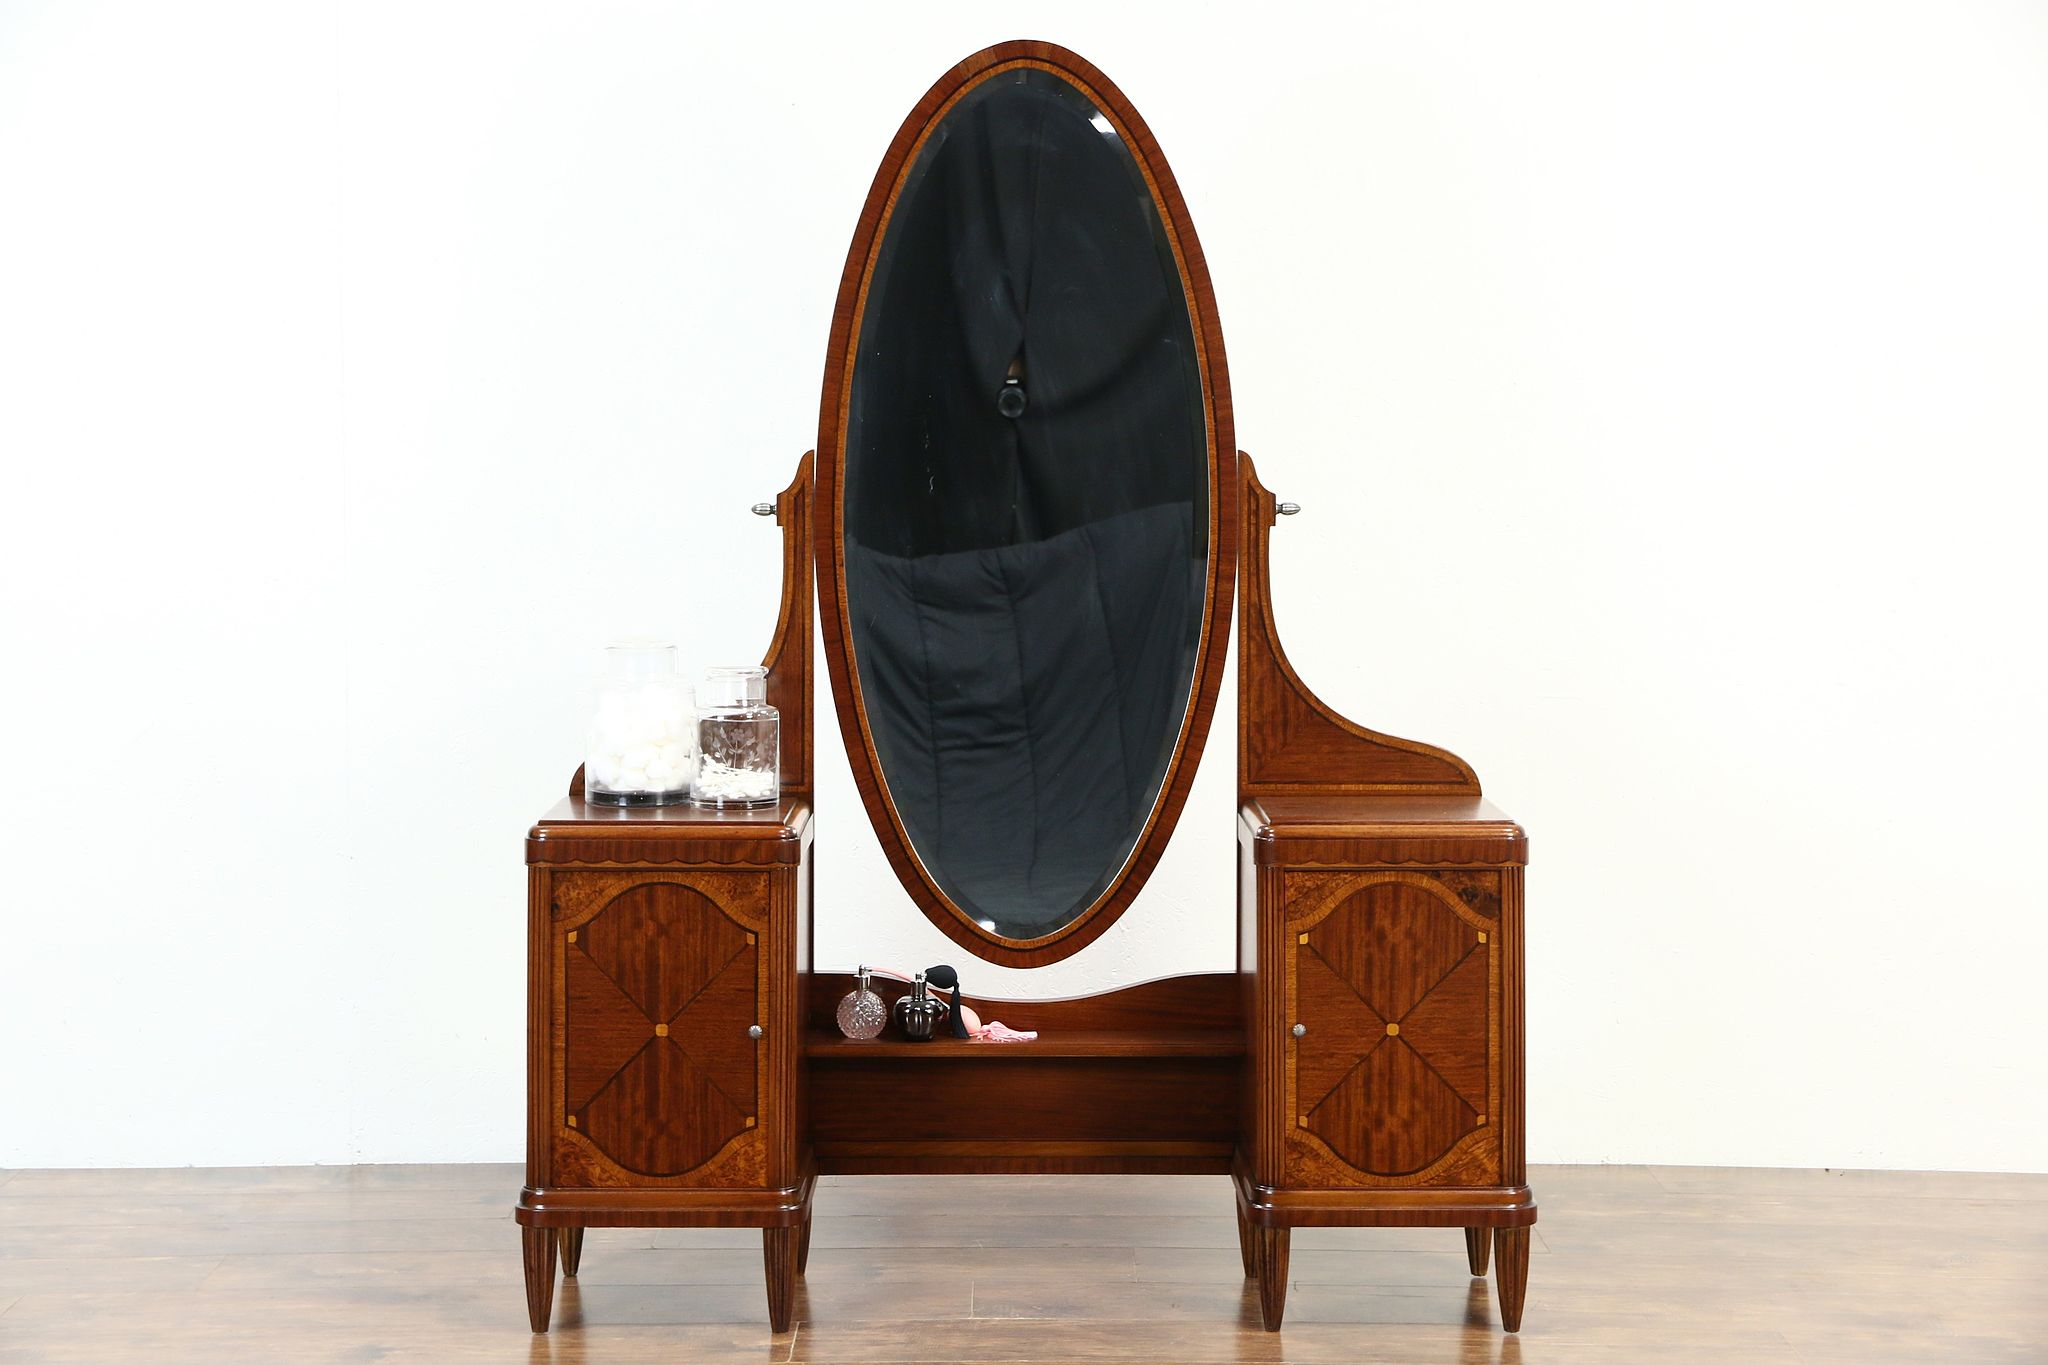 74d458120c7 SOLD - Vanity or Dressing Table   Mirror 1925 English Art Deco Rosewood  Marquetry - Harp Gallery